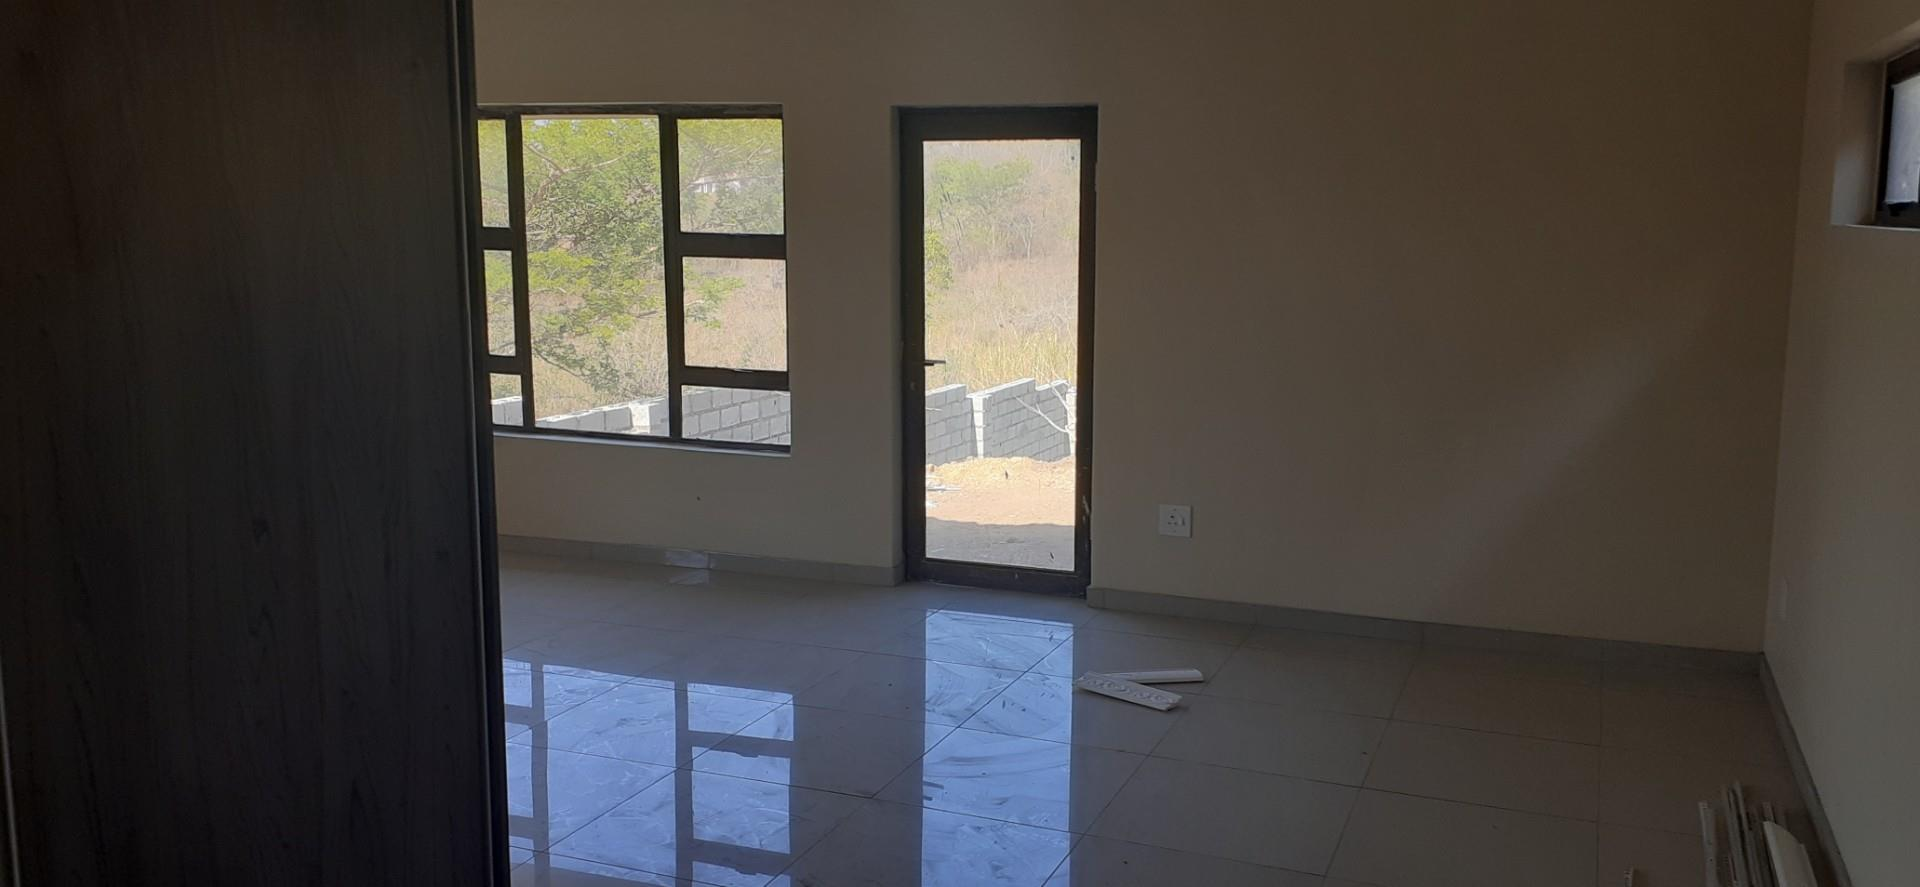 3 Bedroom House For Sale in Matsapha